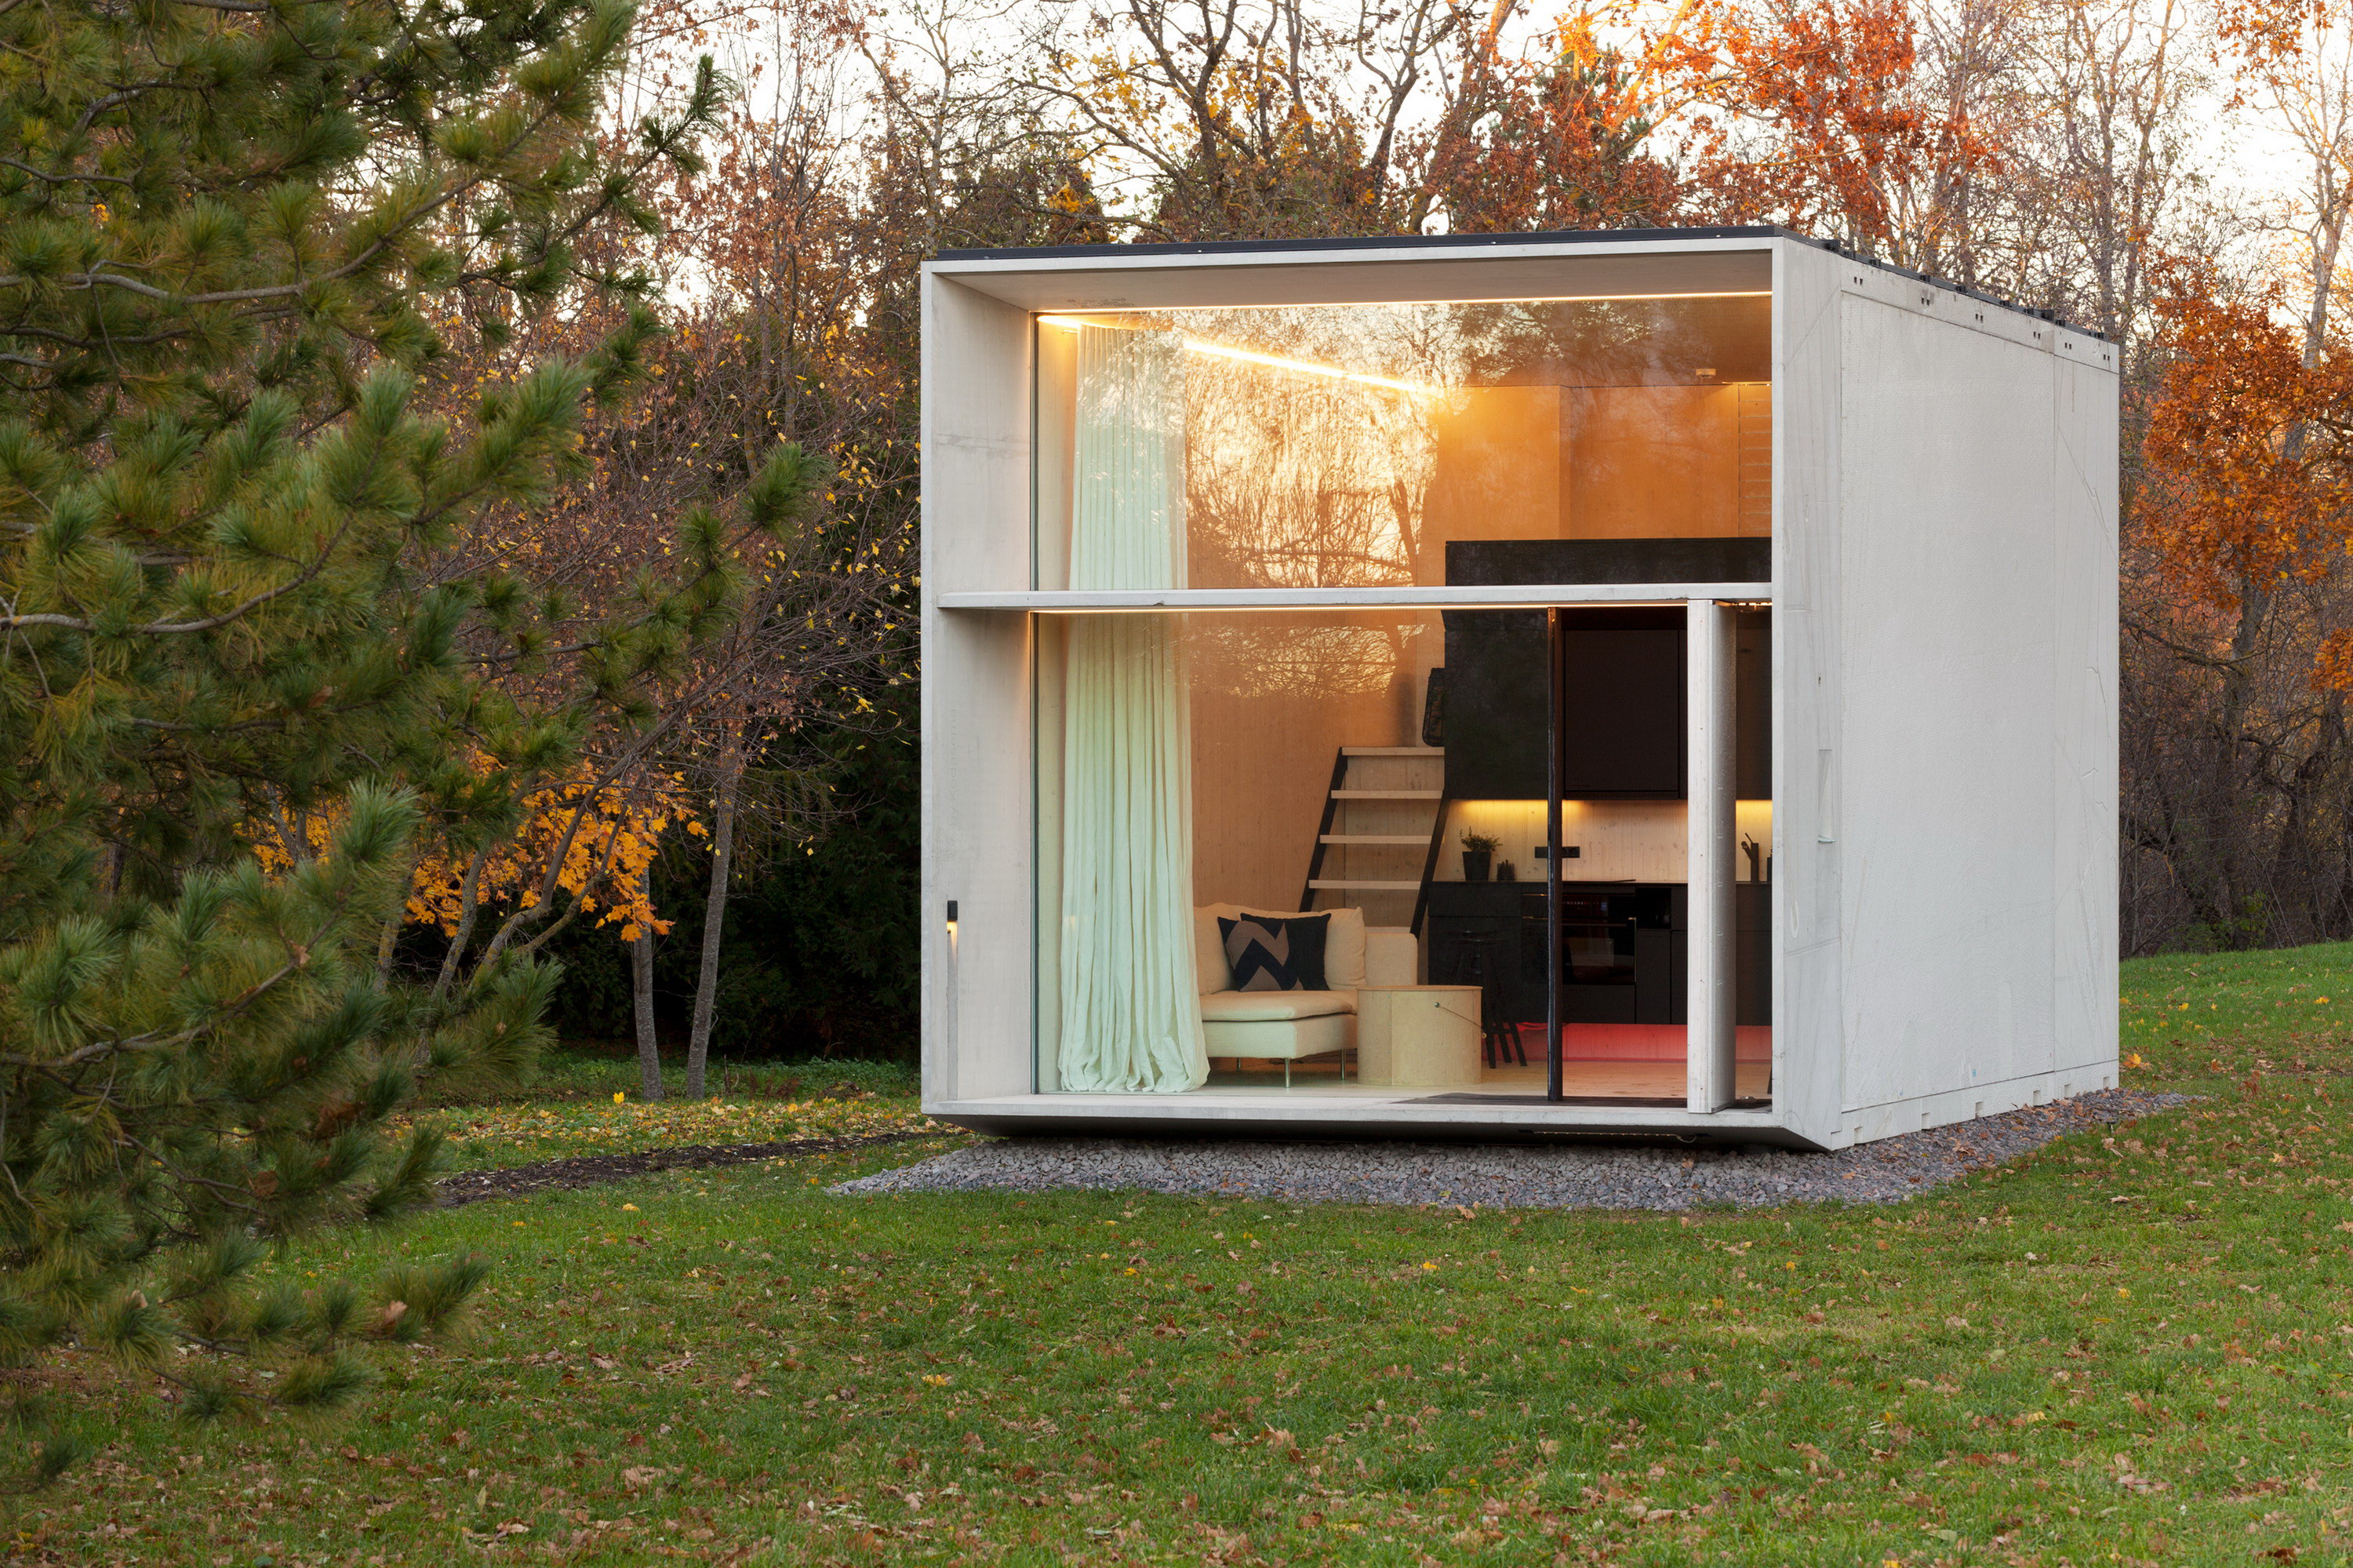 KODA | Prefabricated Tiny House by Kodasema